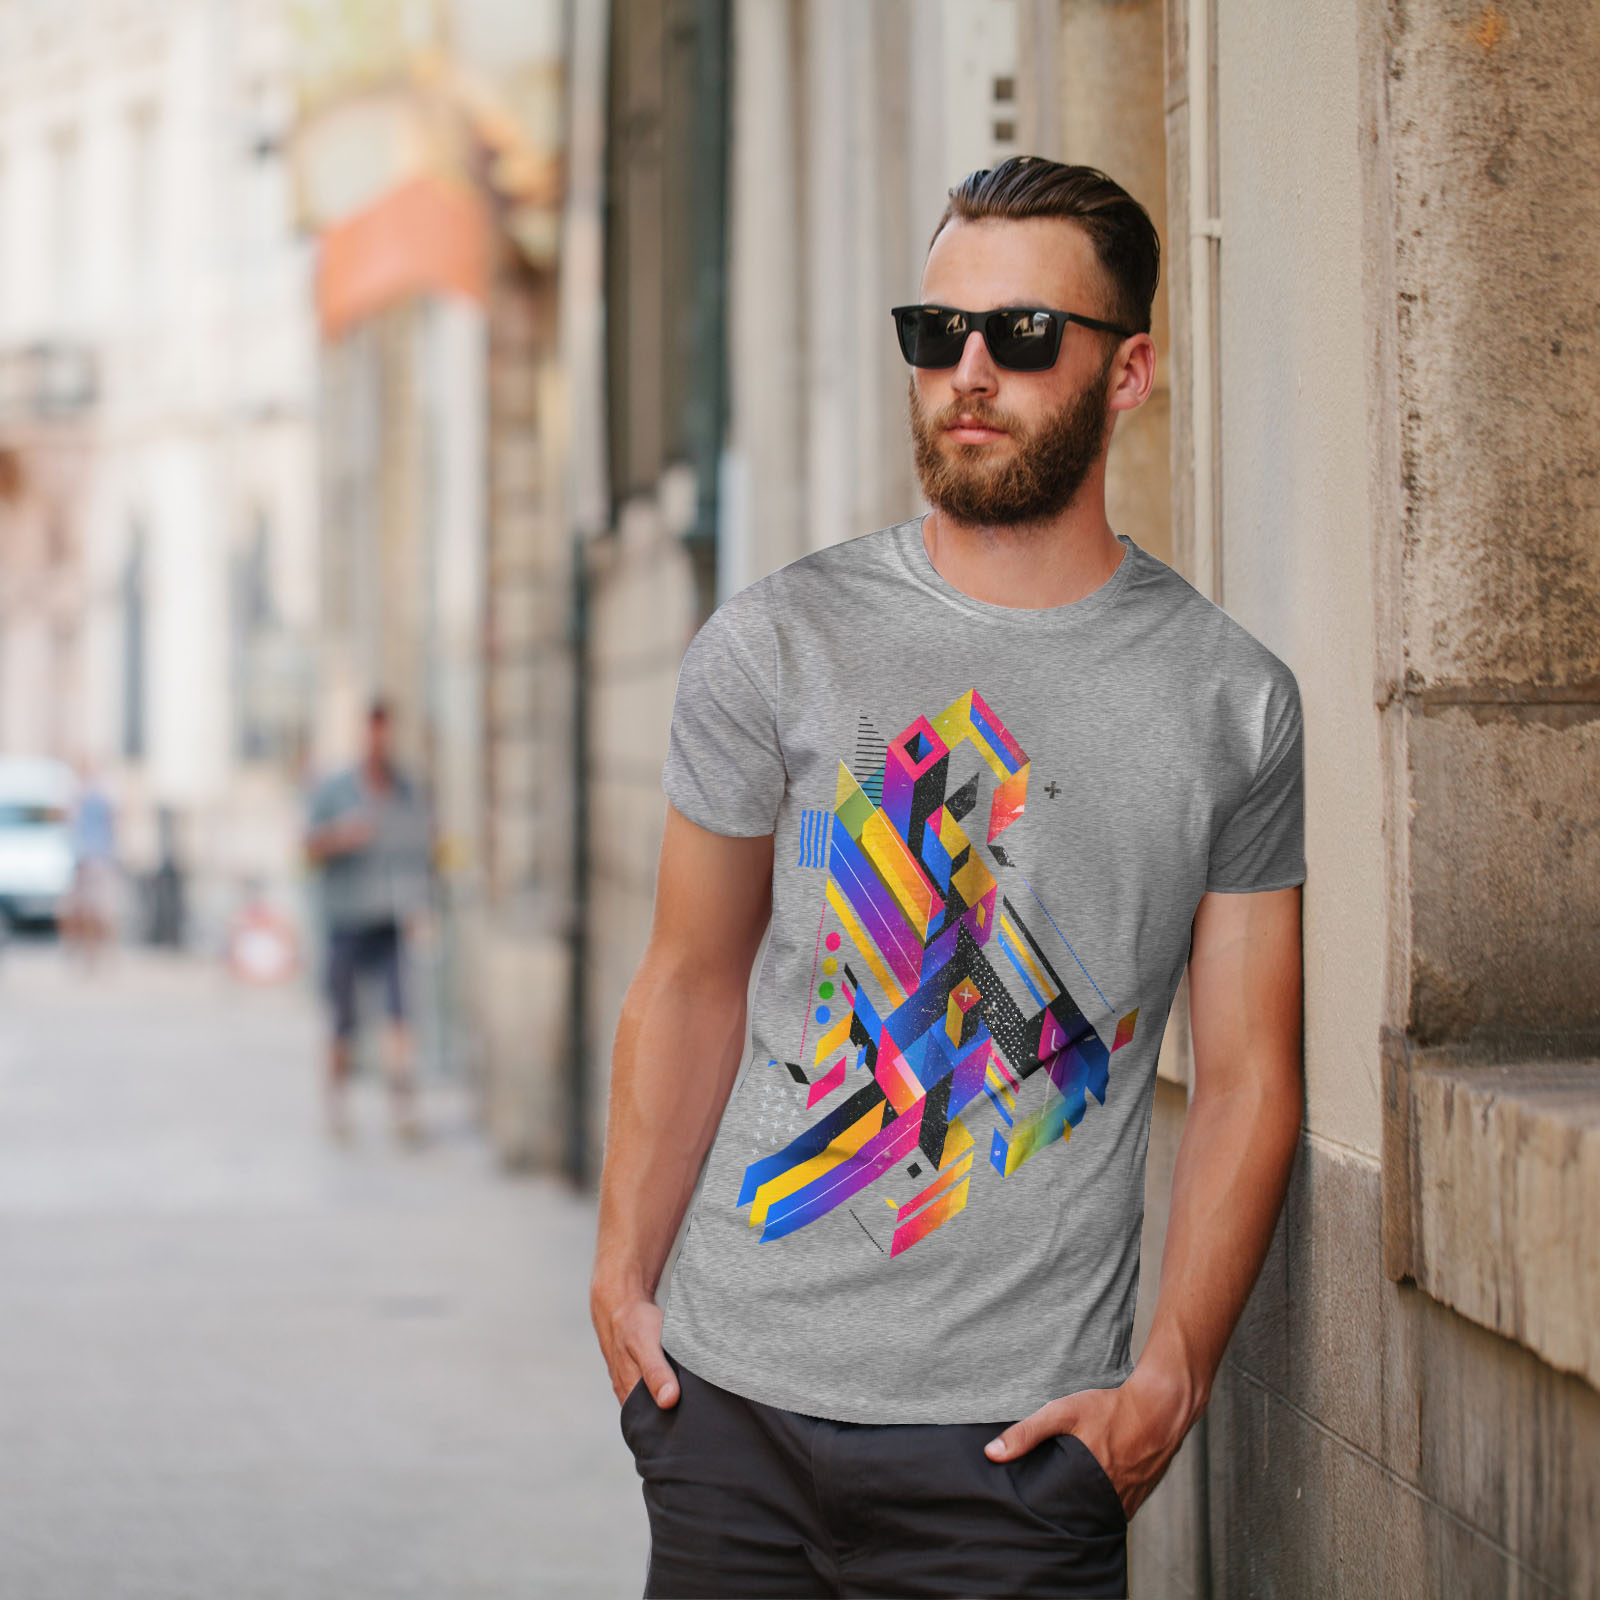 Wellcoda-Abstract-Maze-T-shirt-homme-Labyrinthe-conception-graphique-imprime-Tee miniature 17